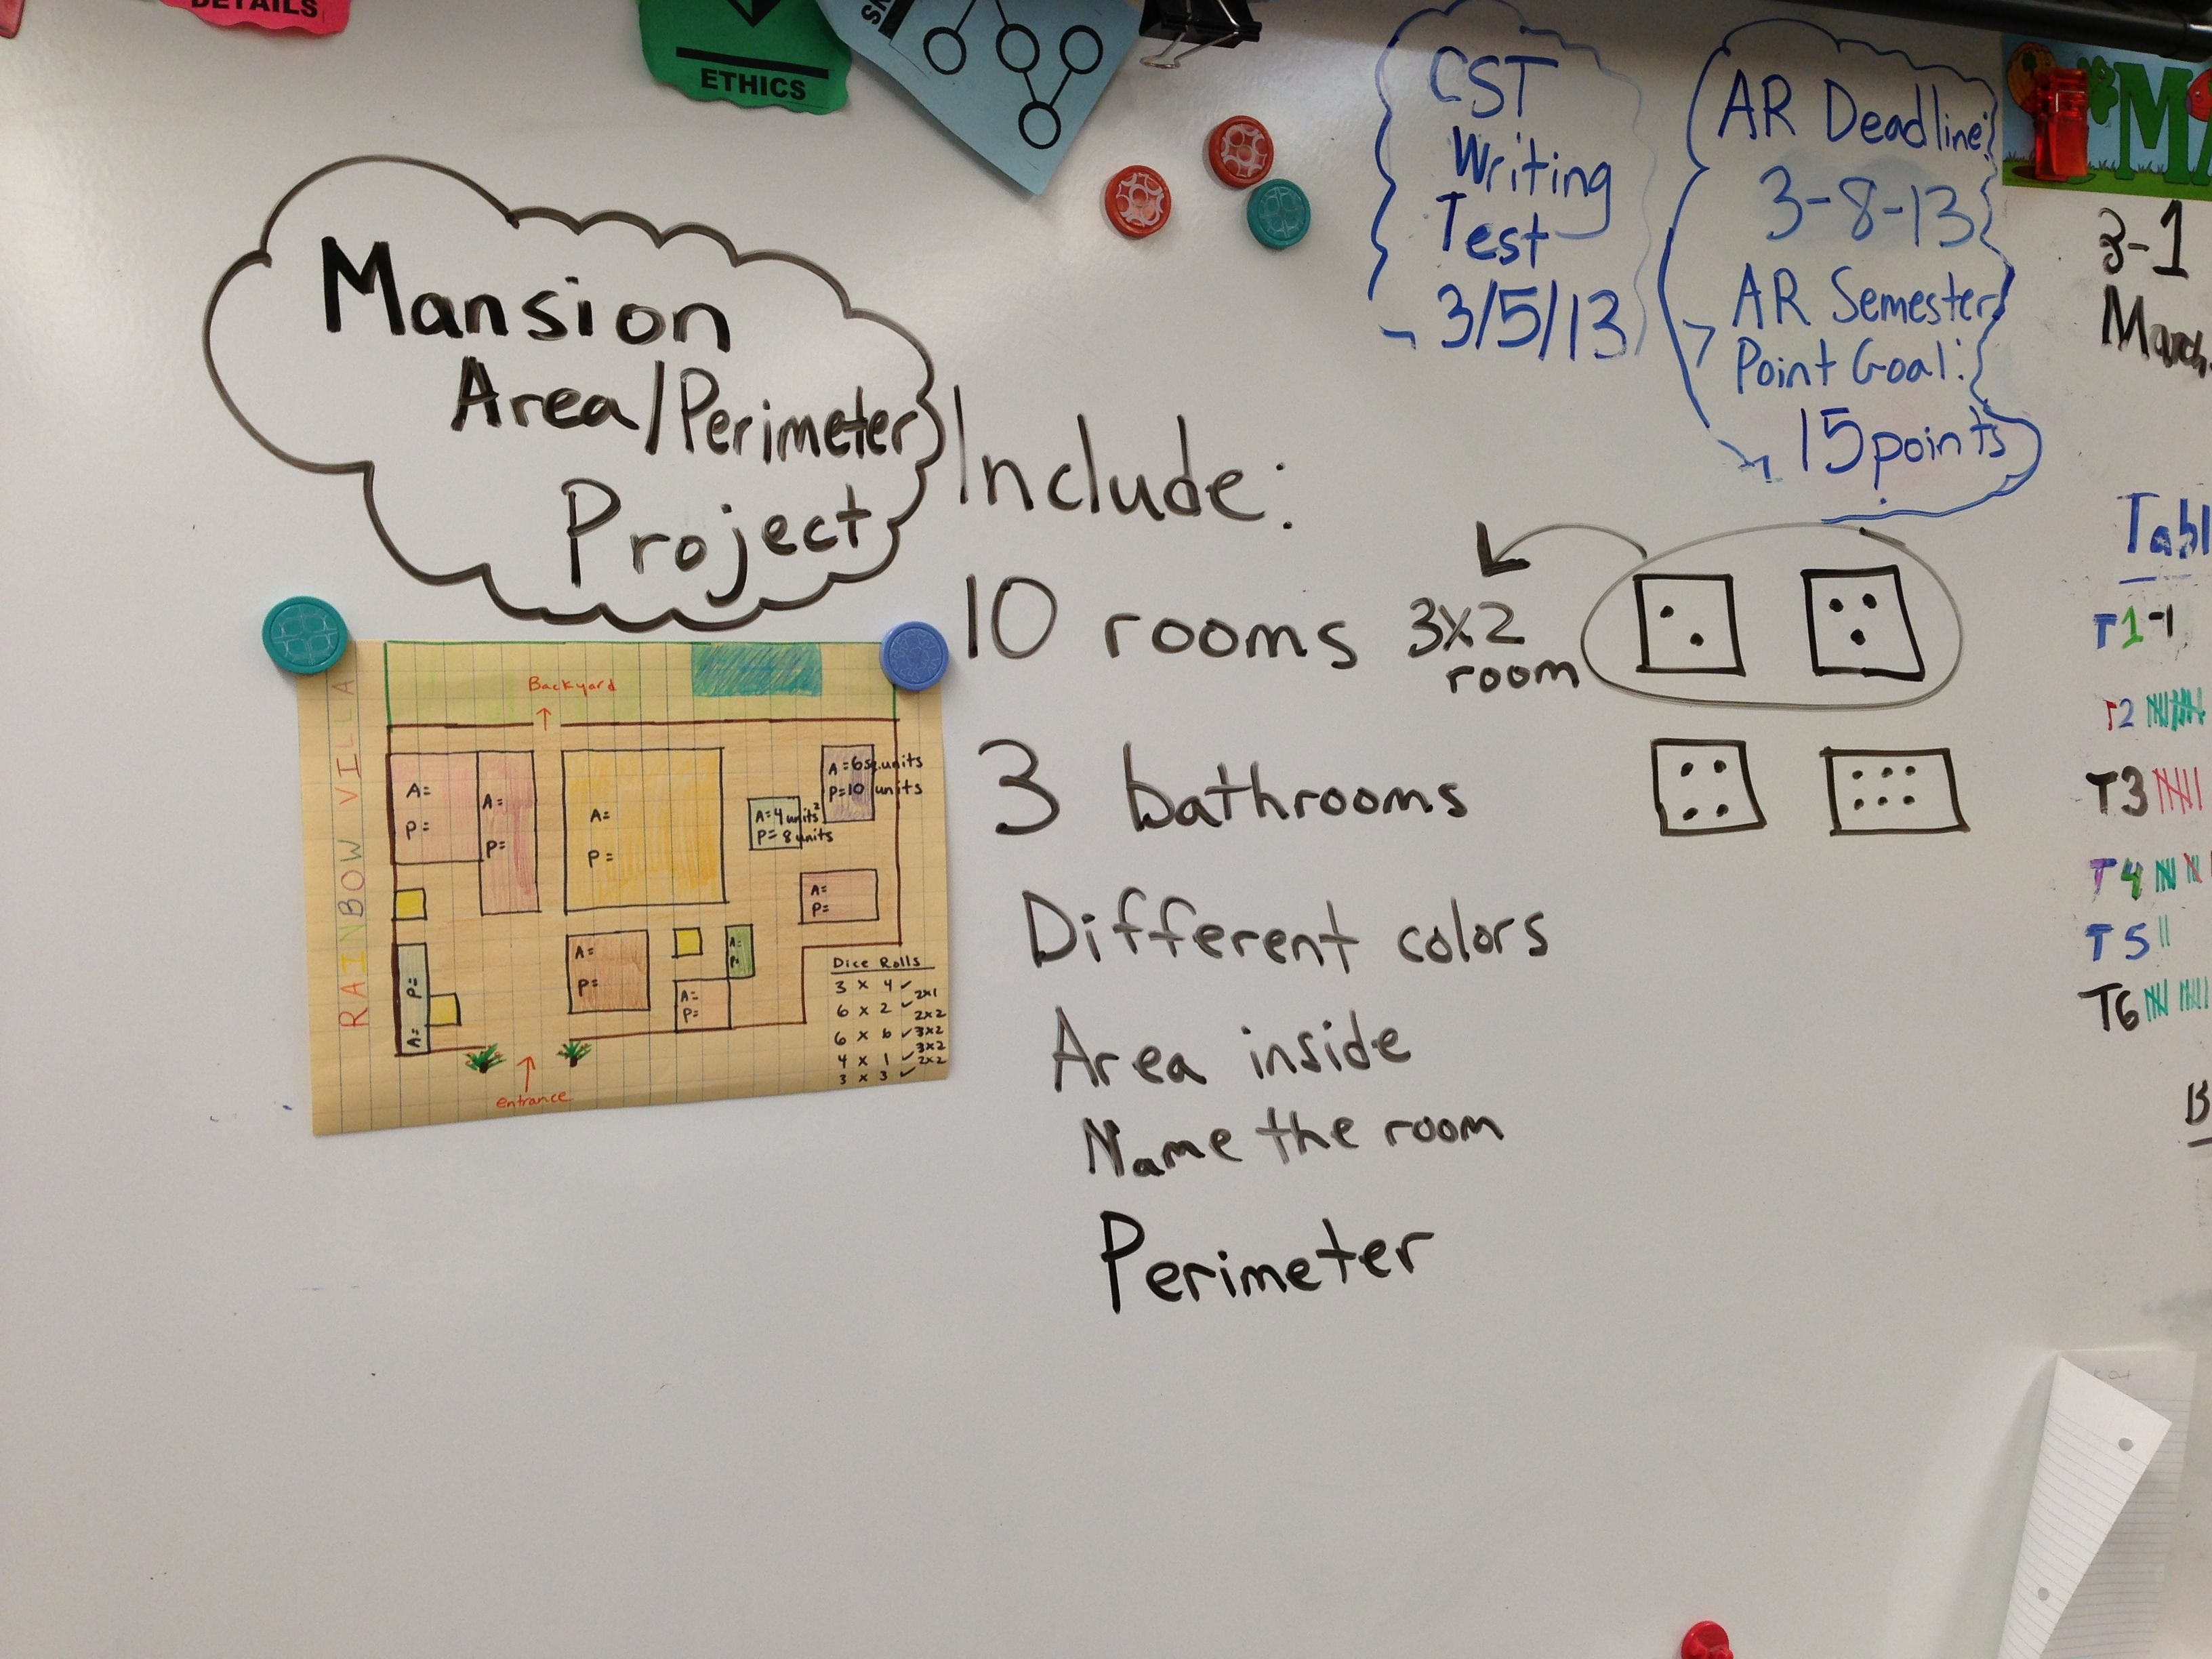 Area Perimeter Mansion Project Students Create Rooms